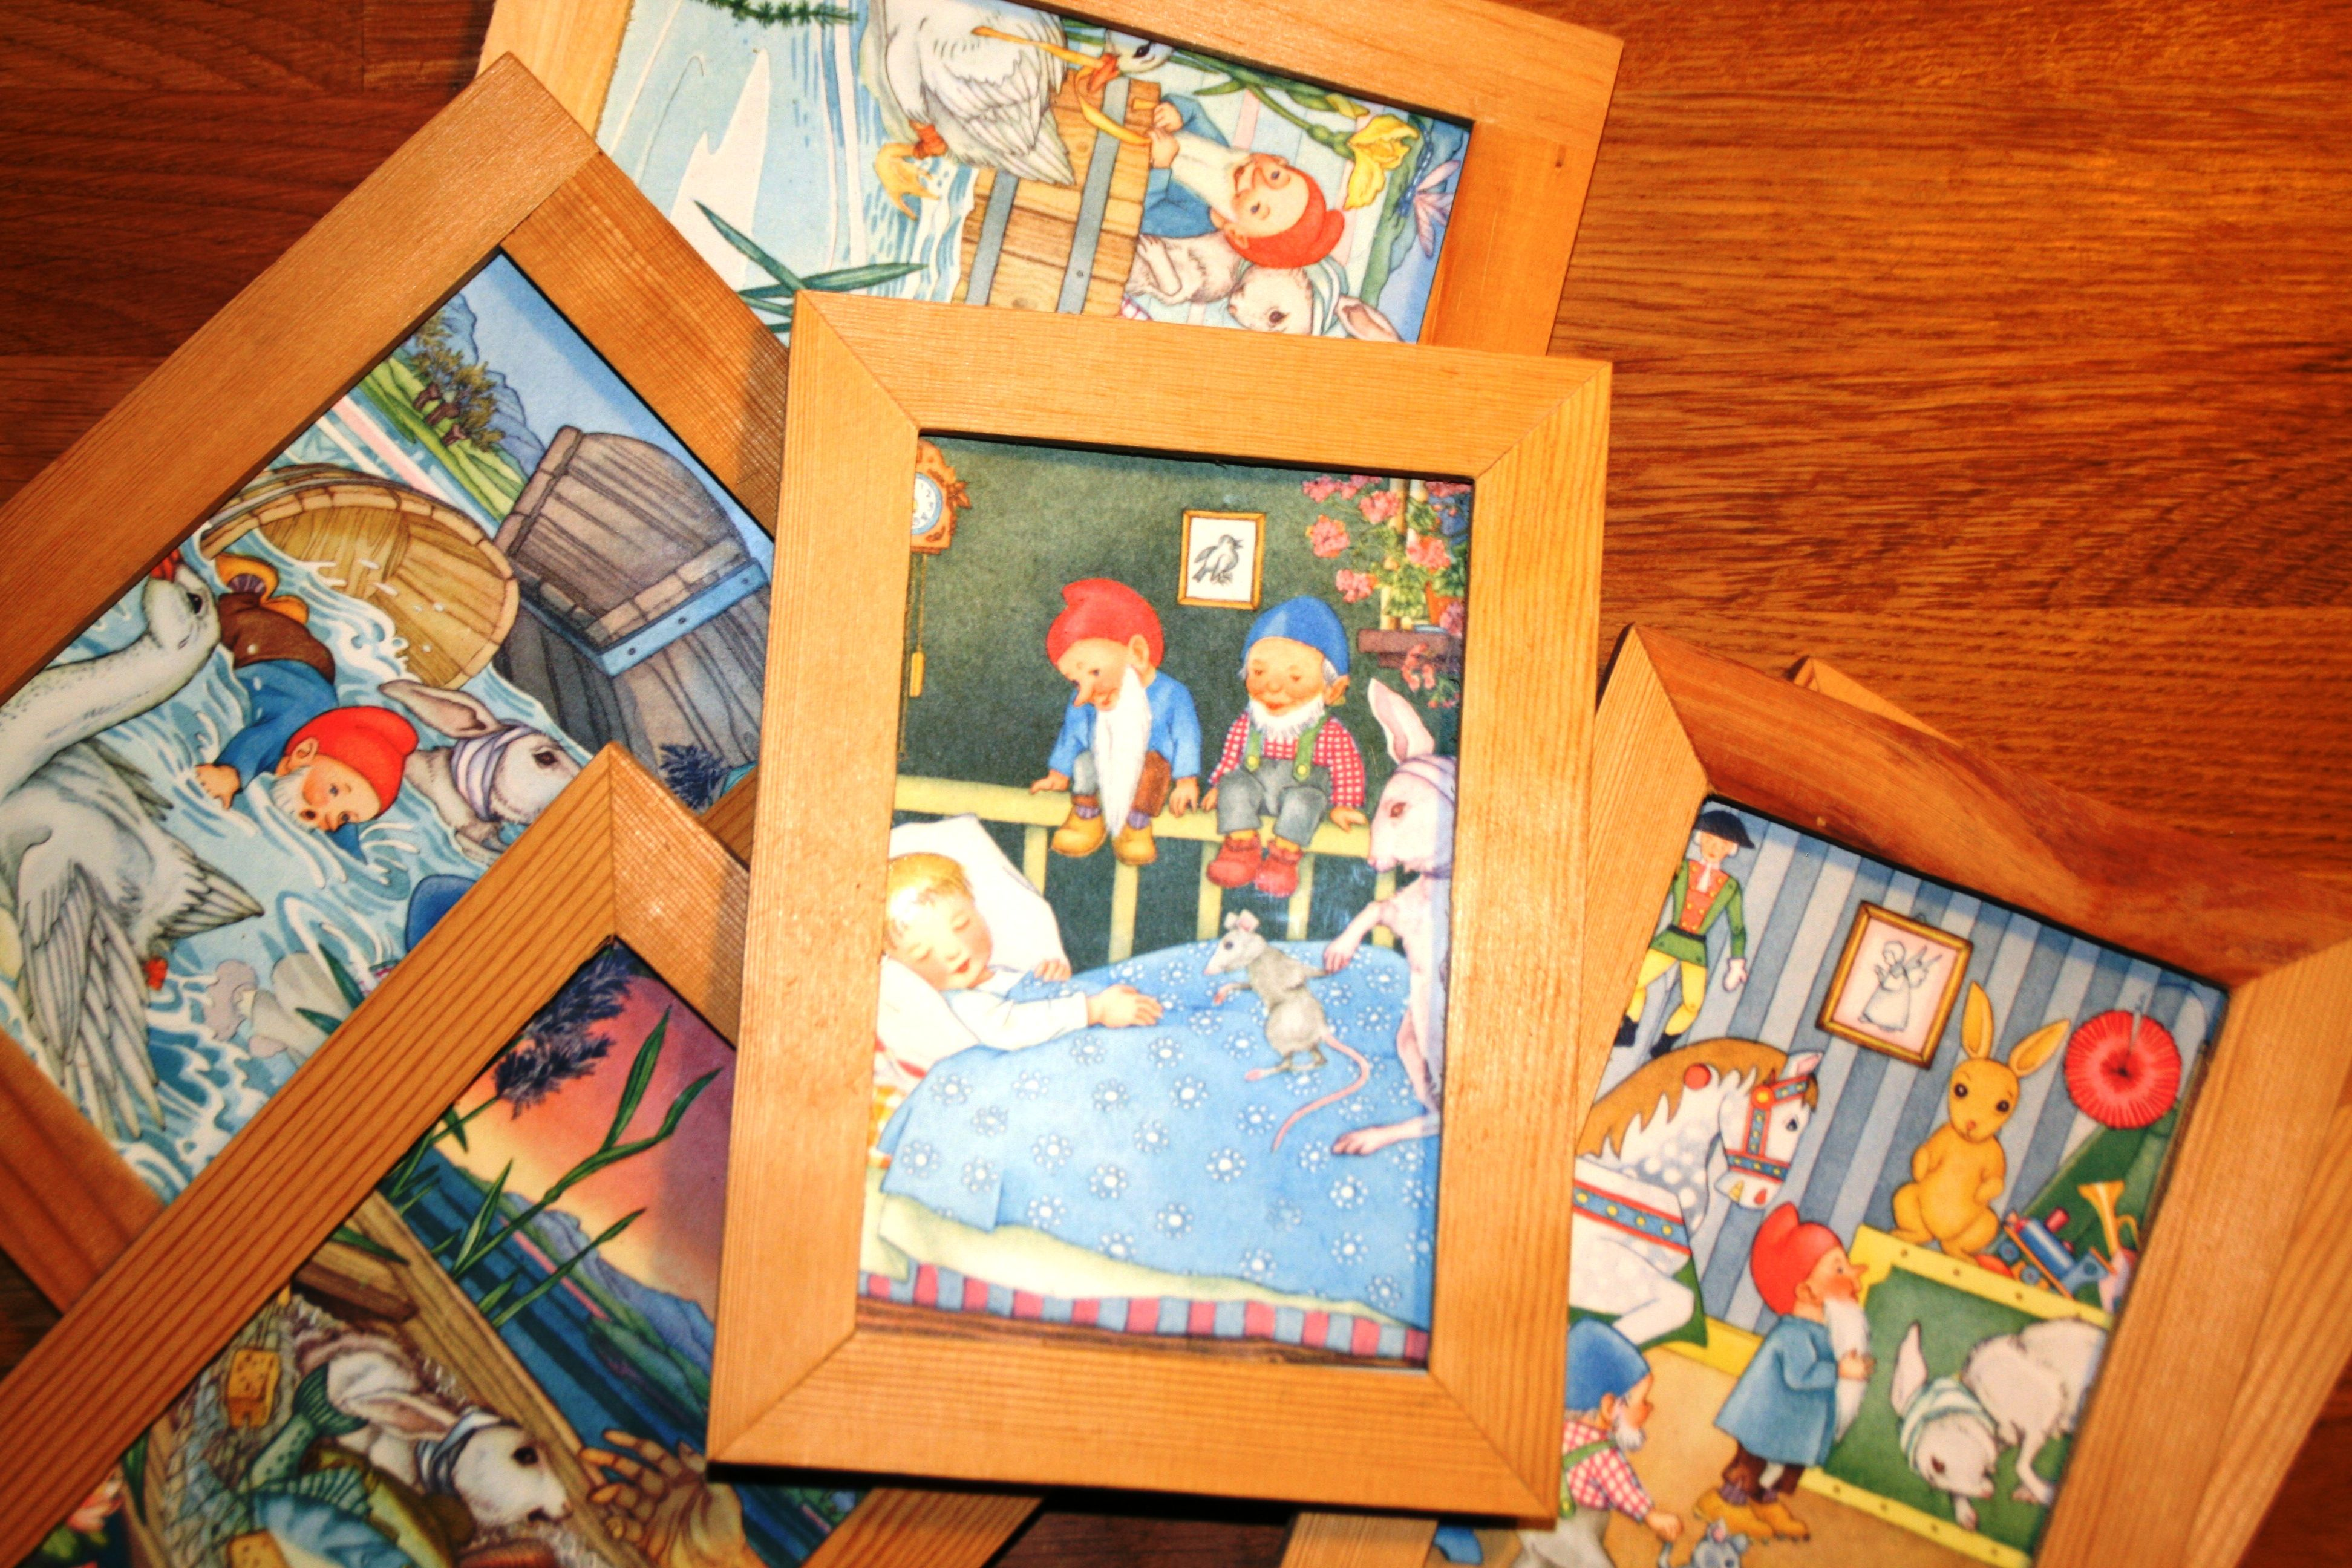 Frames with pictures from a used children's book - a story about pixies...